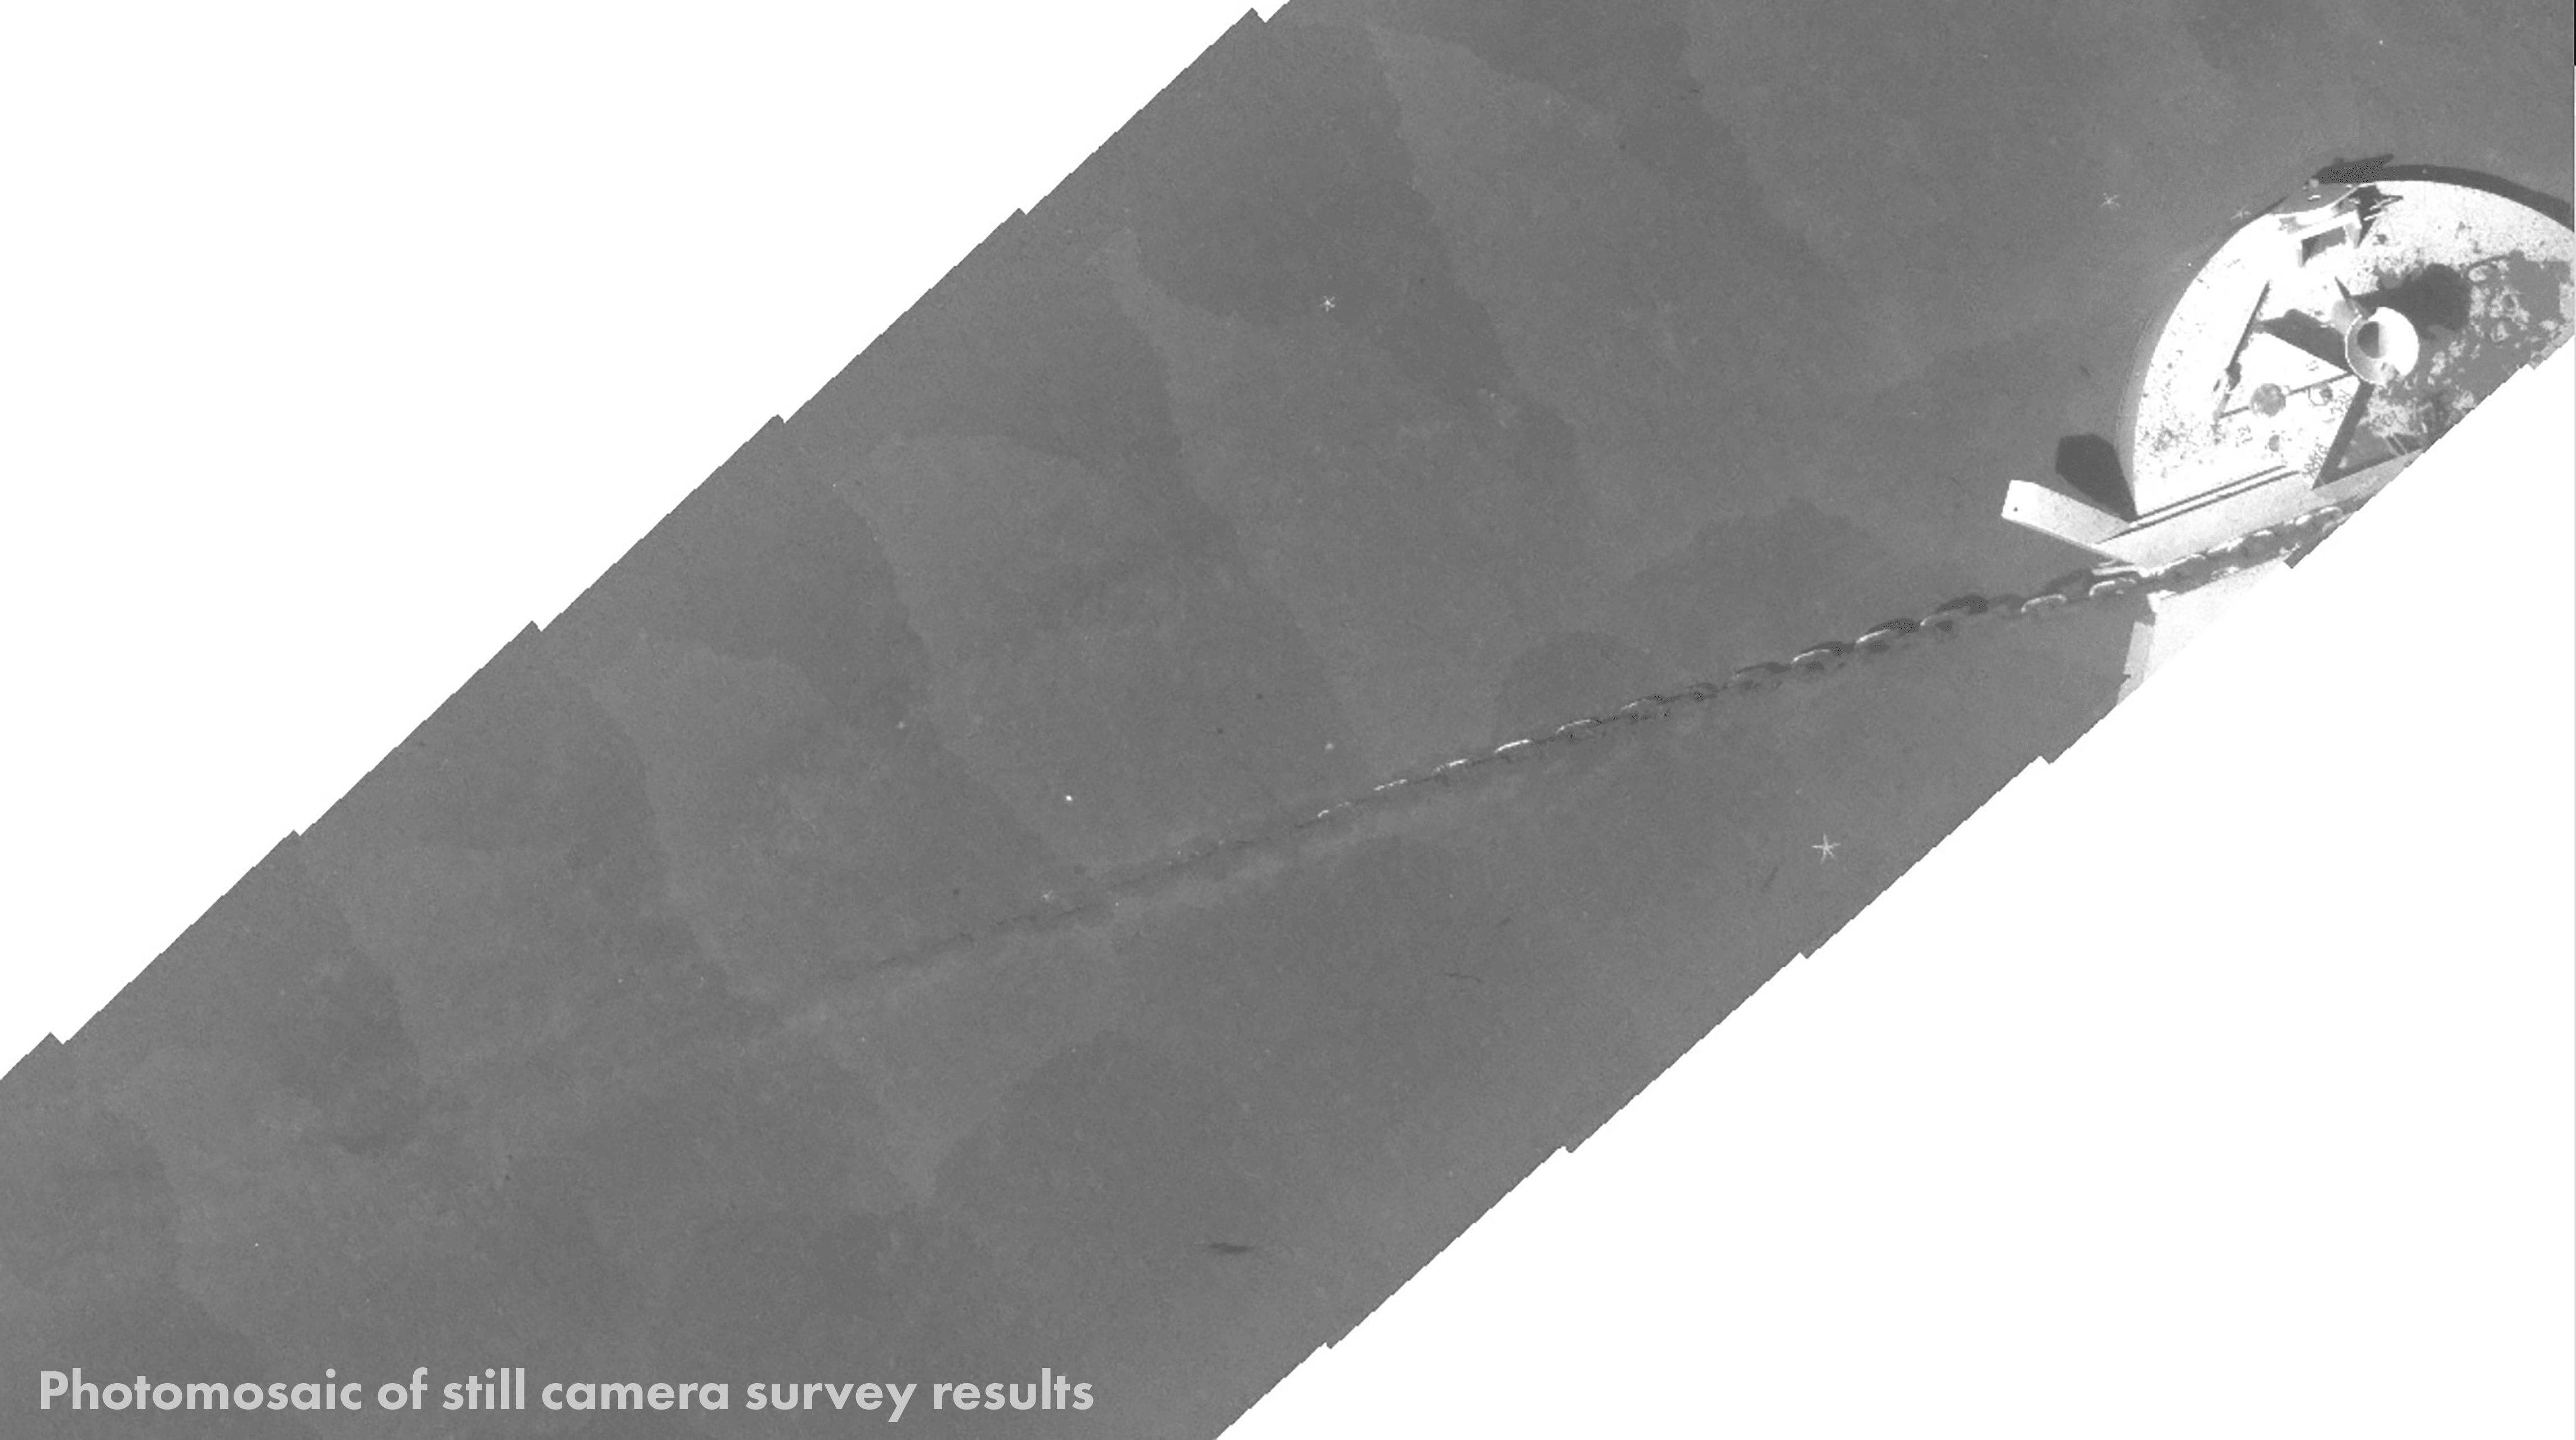 photo mosaic results from auv-based pipeline surveying solution